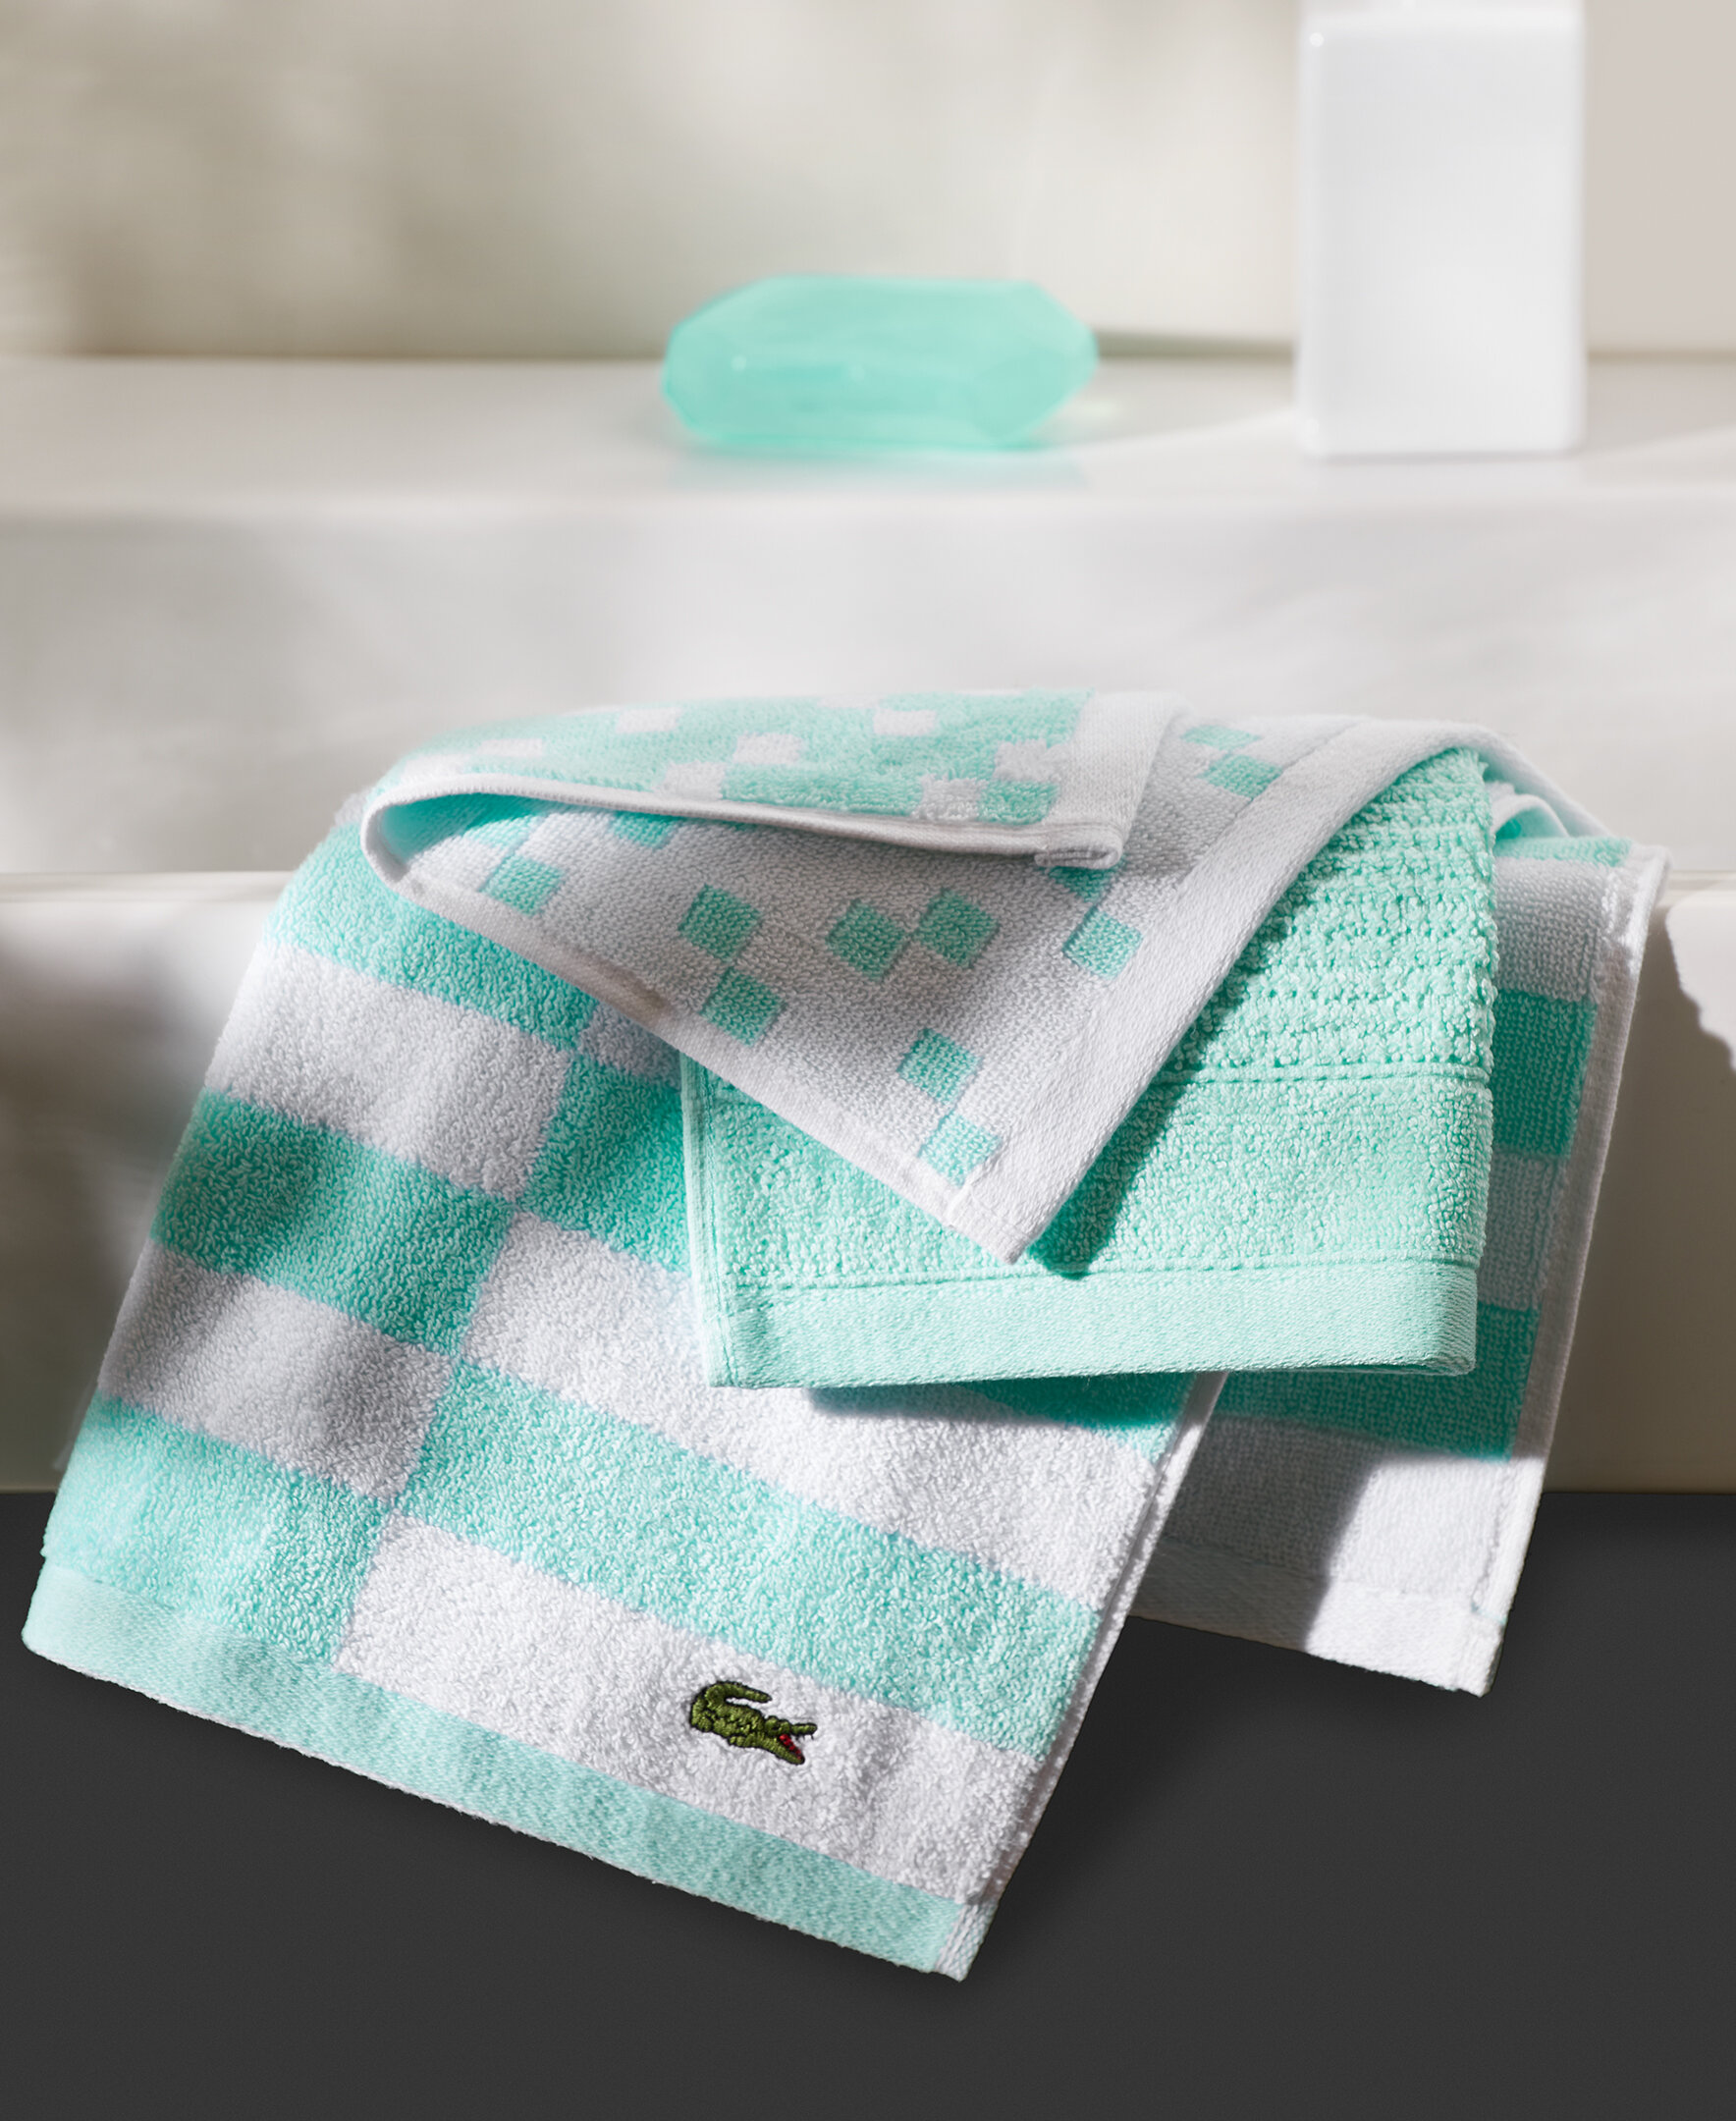 Lacoste Towels Clearance: Lacoste Mini Squares Lacoste 100% Cotton Hand Towel